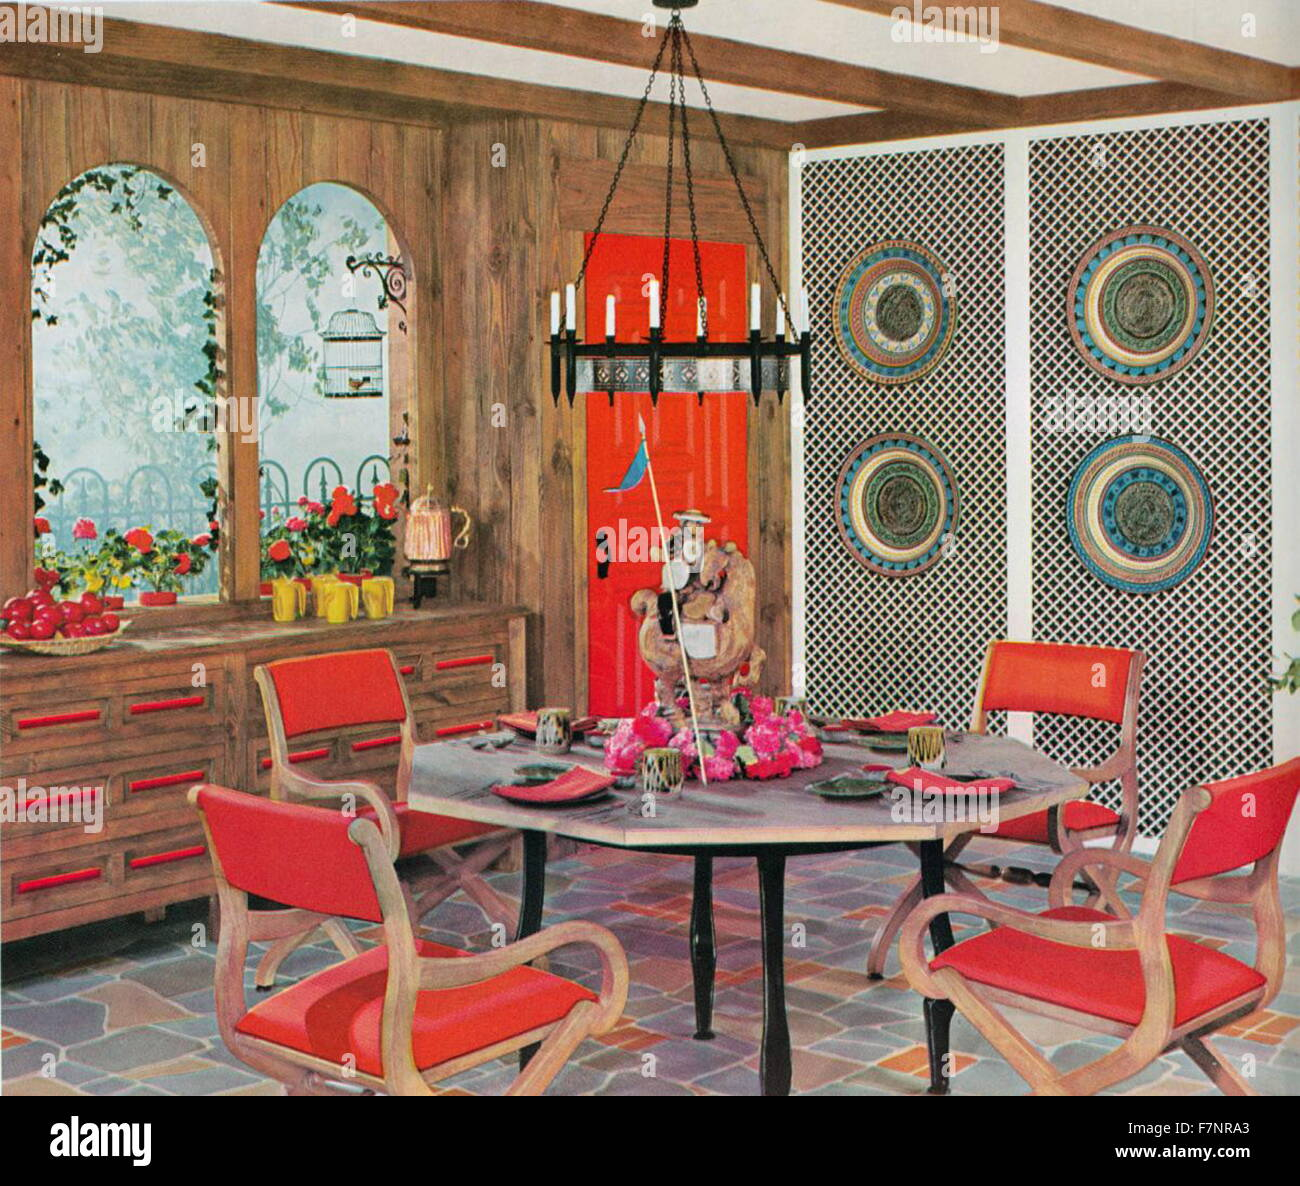 Illustration depicting a Retro dinning area from the Amstrong Book of Interior Decoration. Dated 1962 - Stock Image